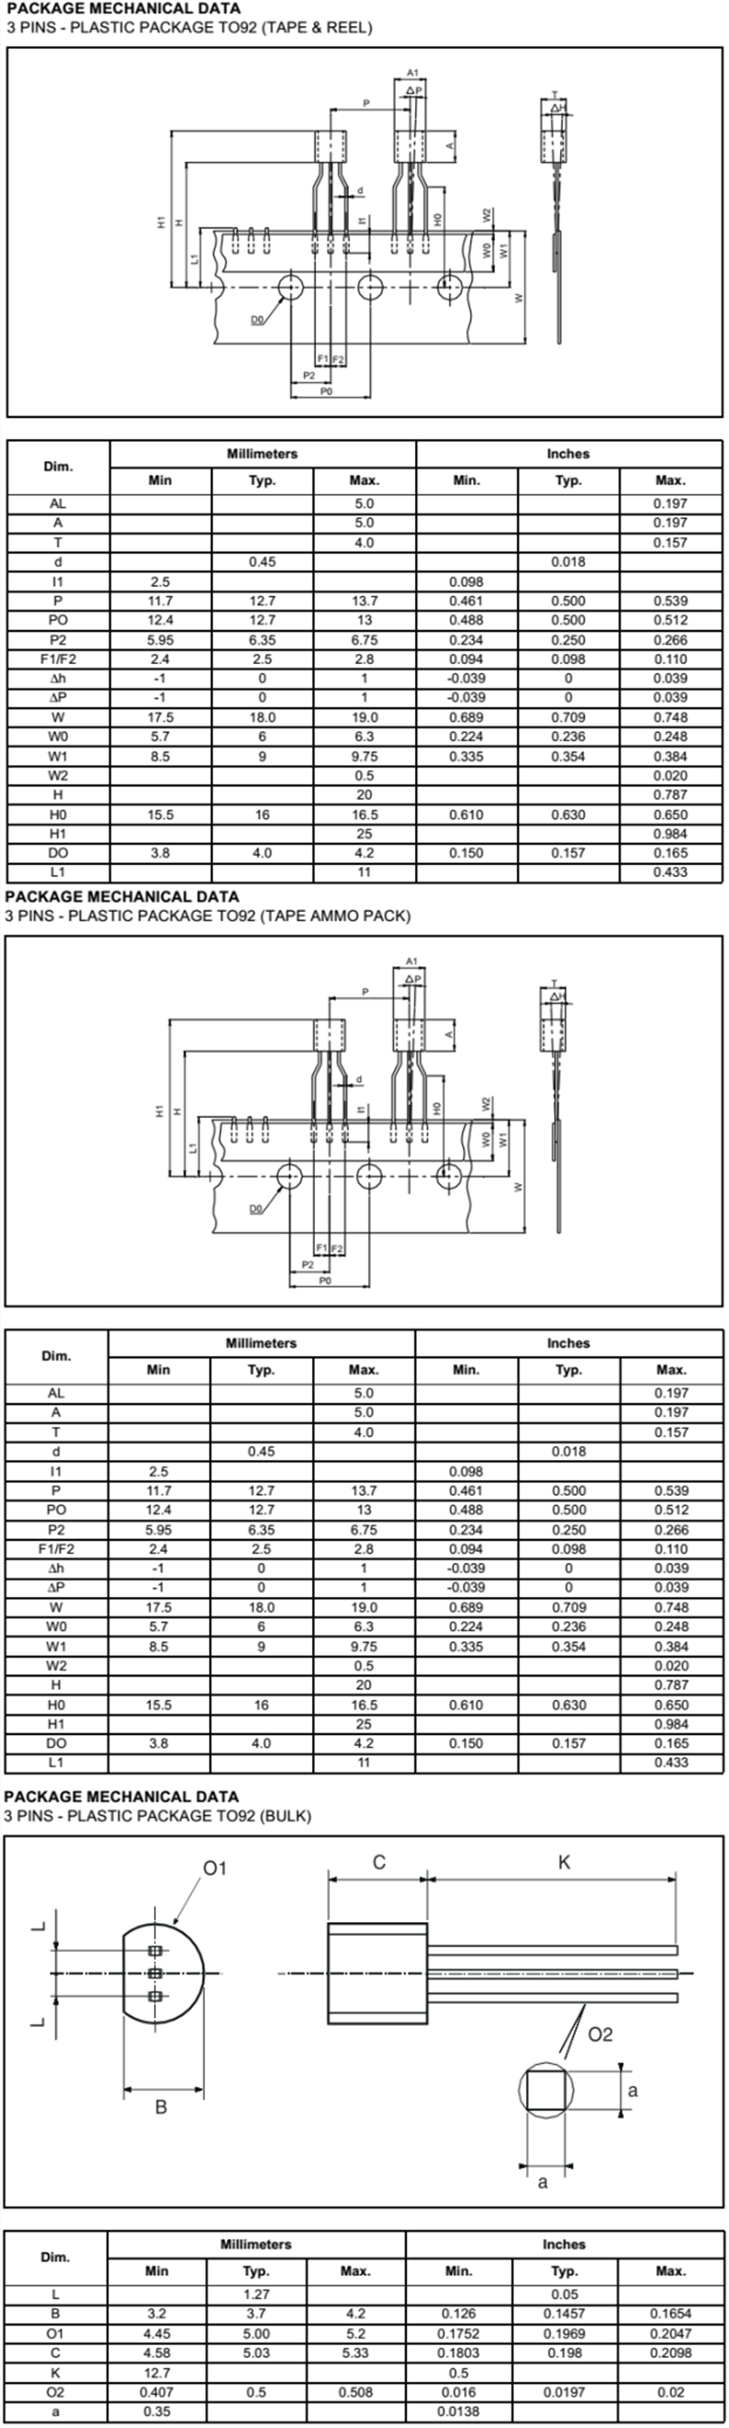 Adjustable Regulator By Tl431 Electronic Projects Circuits Transistor 05 Three Terminal Shunt Reference Source To 92